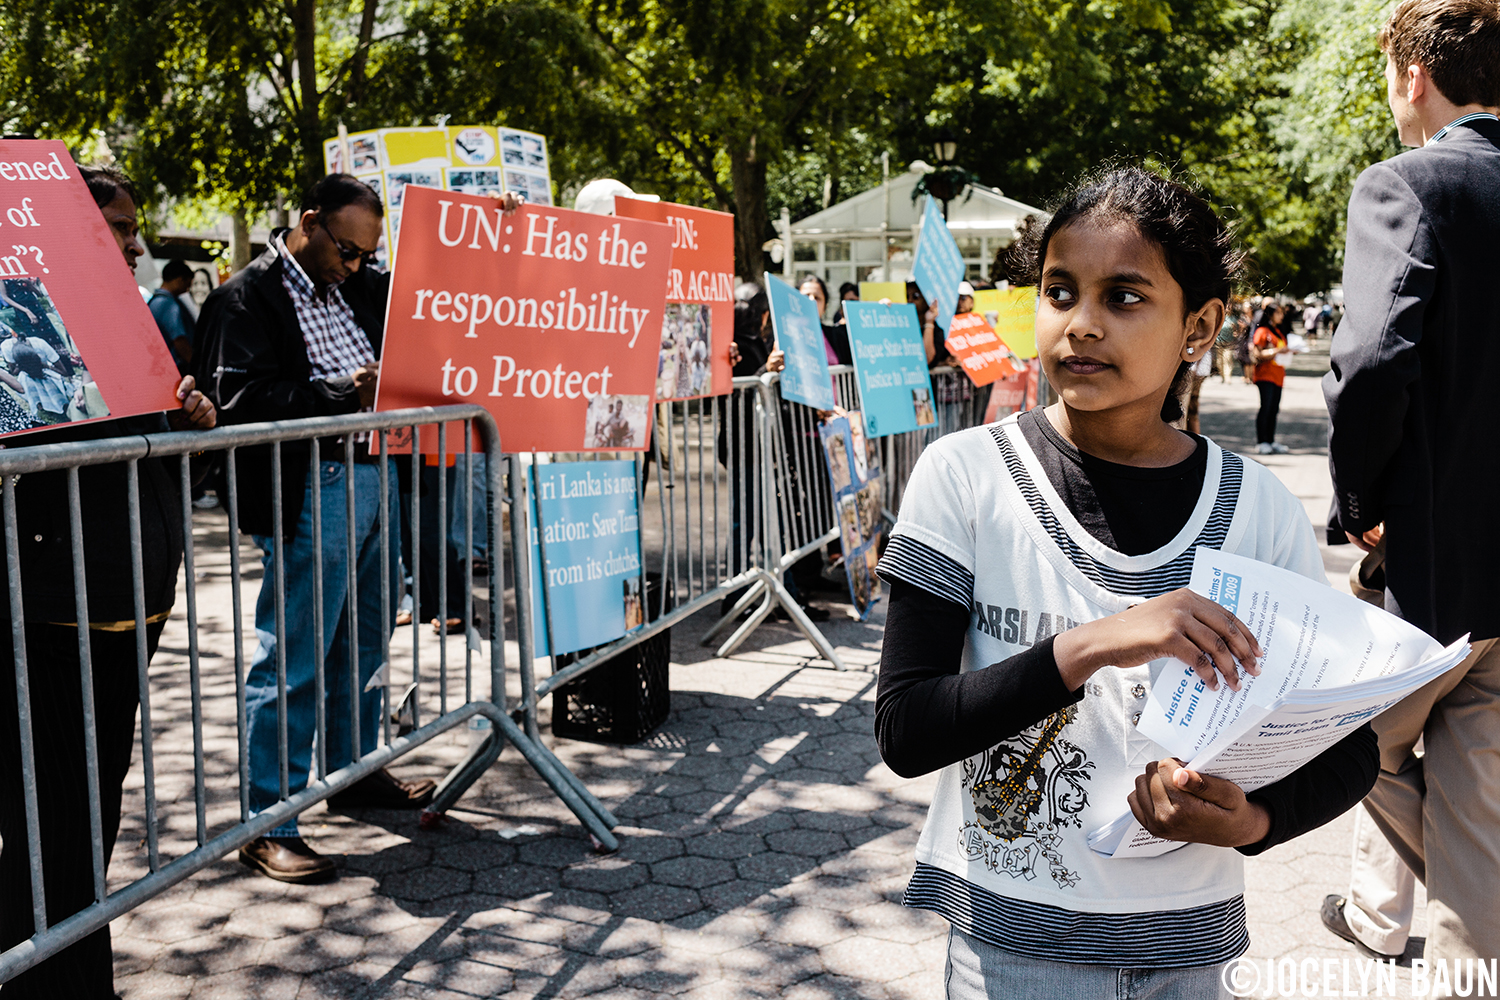 Sri Lankan Tamils protest at the UN to have the Sri Lankan government held accountable for war crimes.